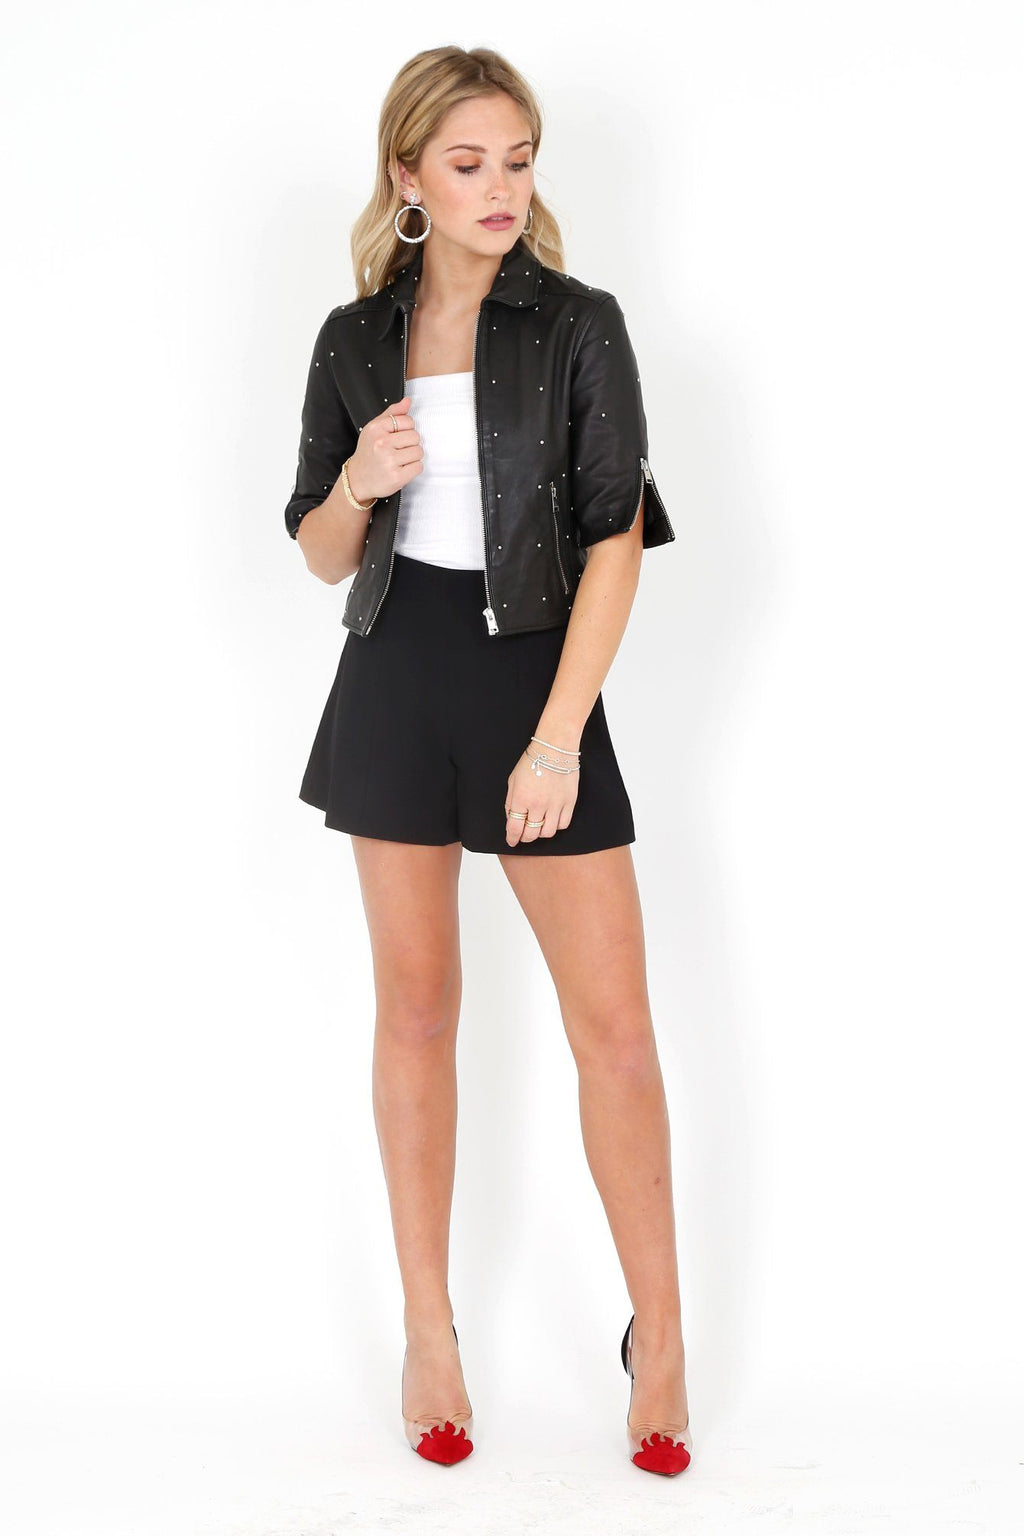 ALICE + OLIVIA | Keira High Waist Flared Shorts - Black